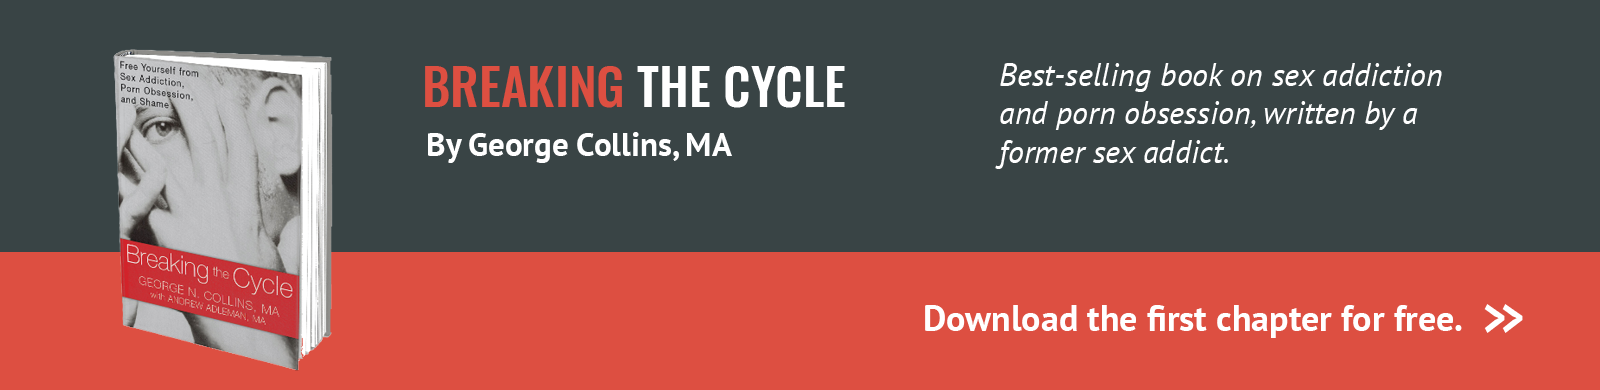 Breaking the Cycle Download Button